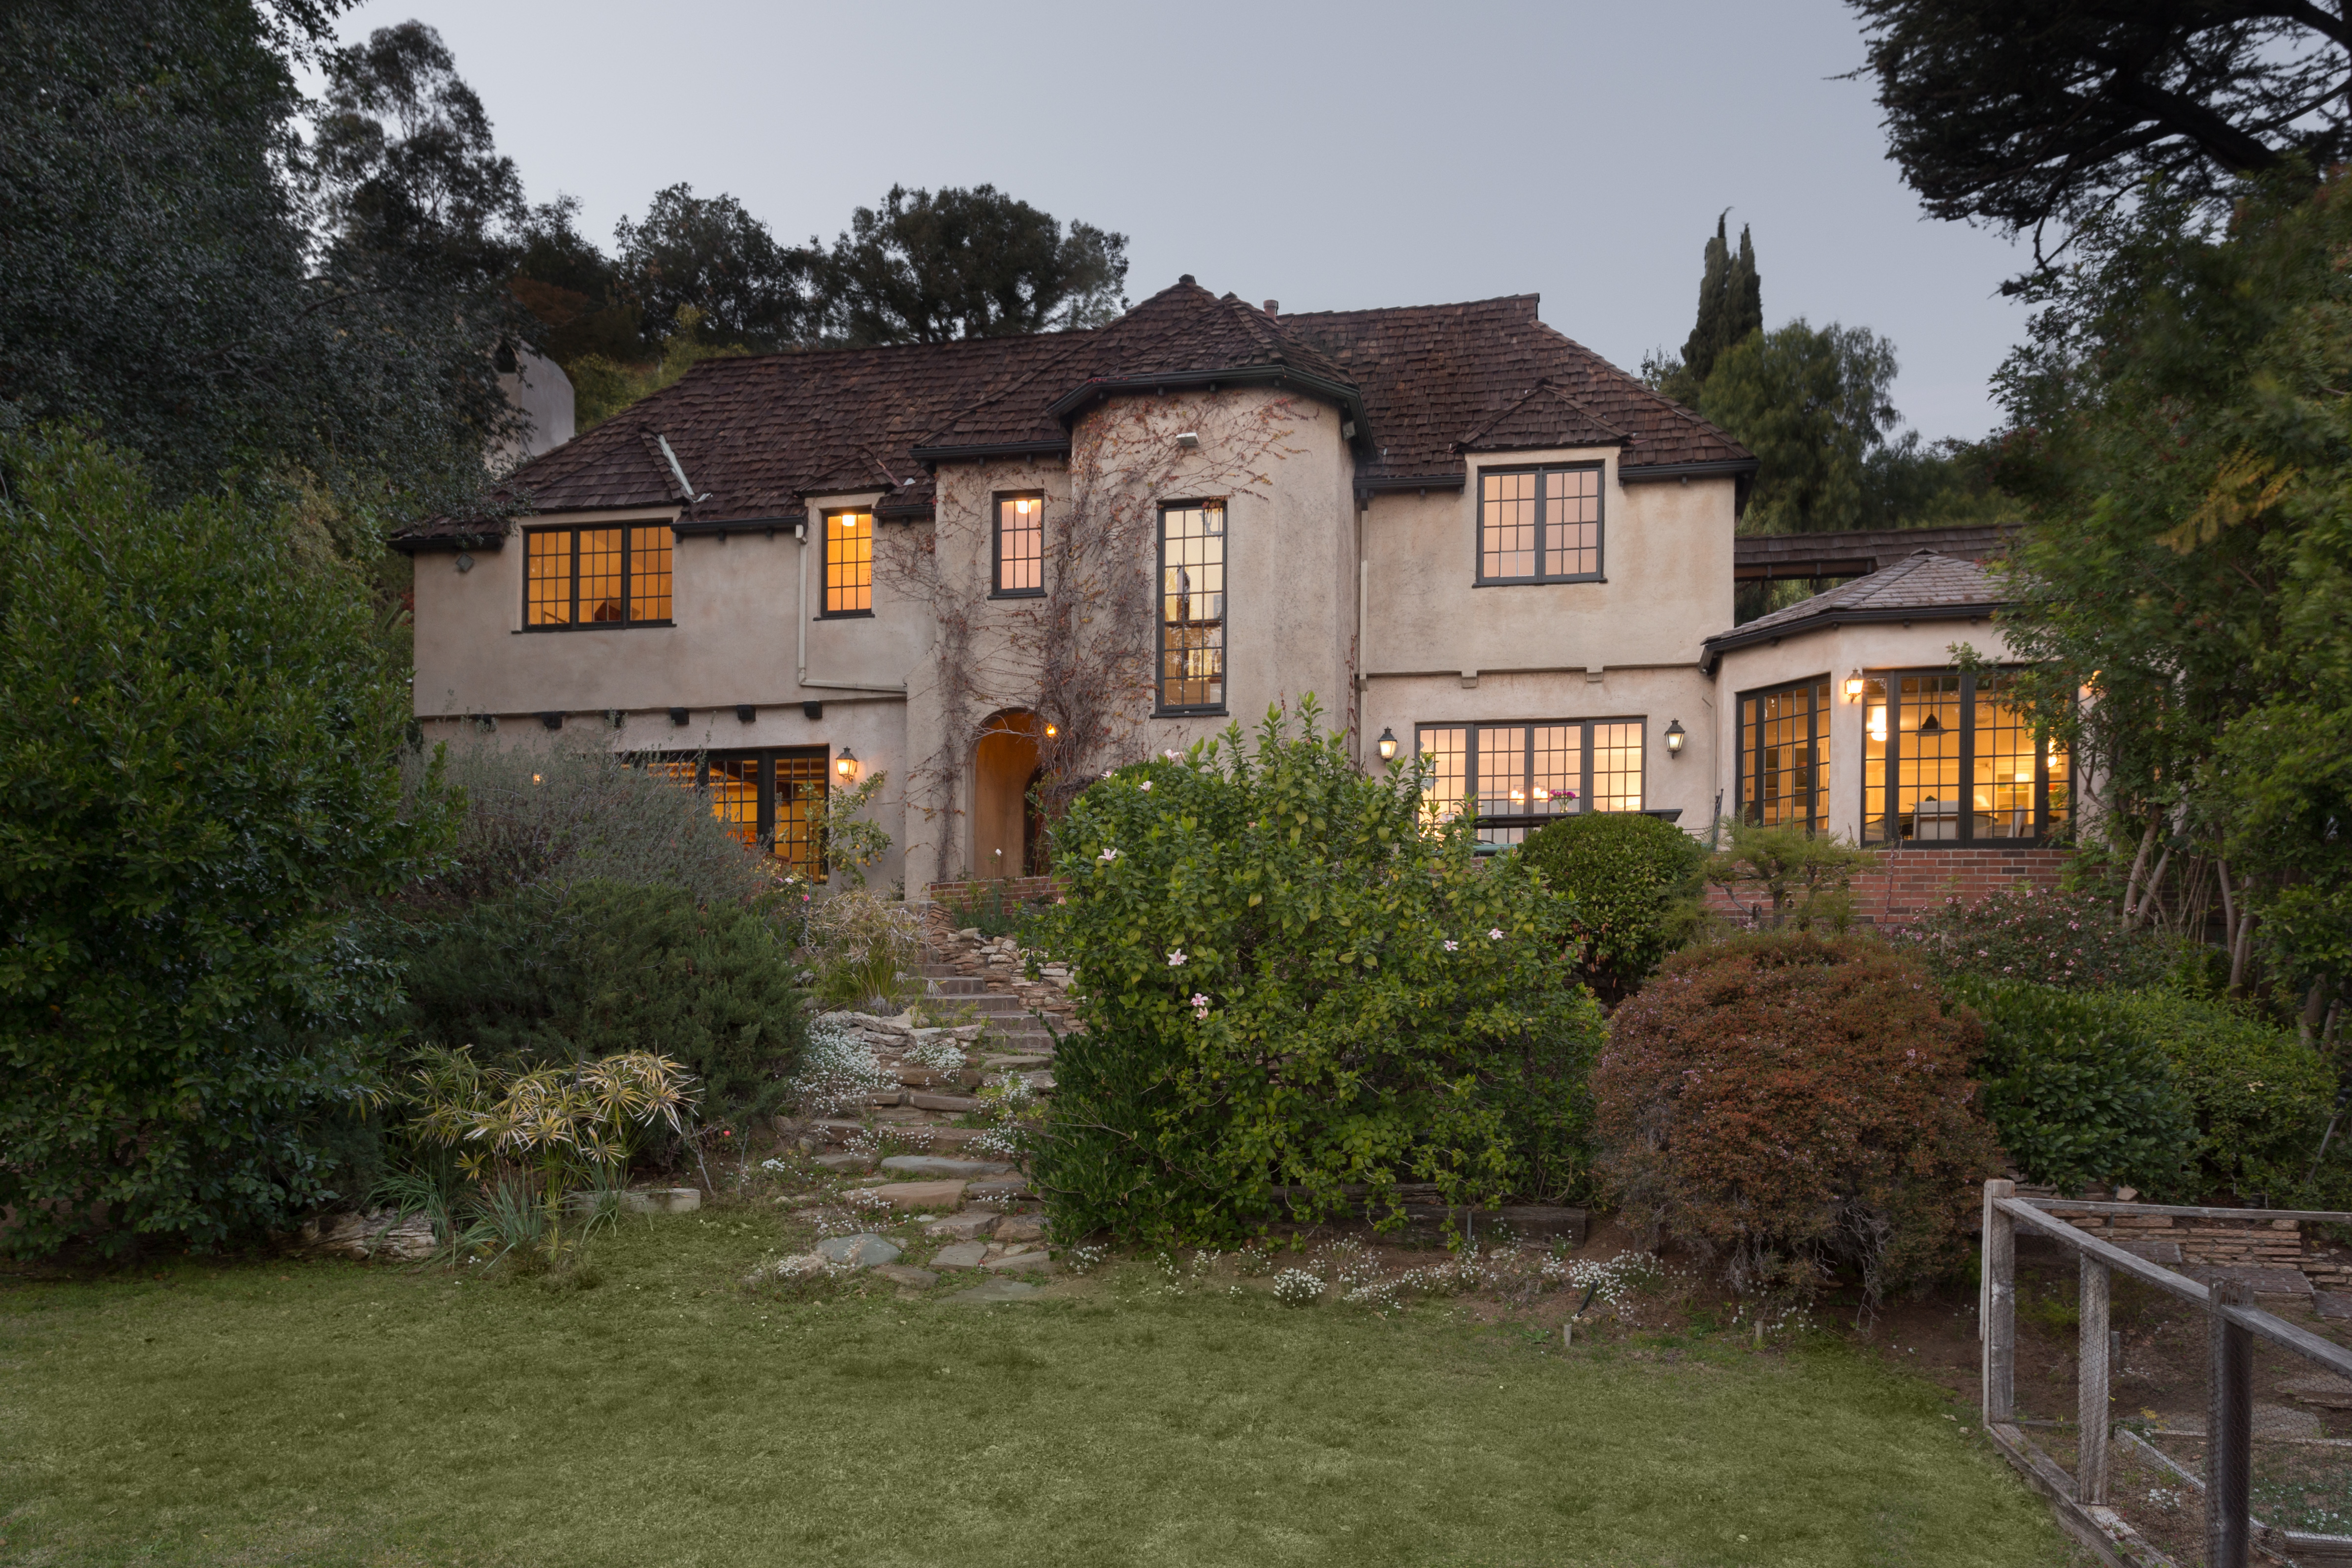 Regal English Manor By Mansion Architect Arthur R Kelly Can Be Yours For 5 5m